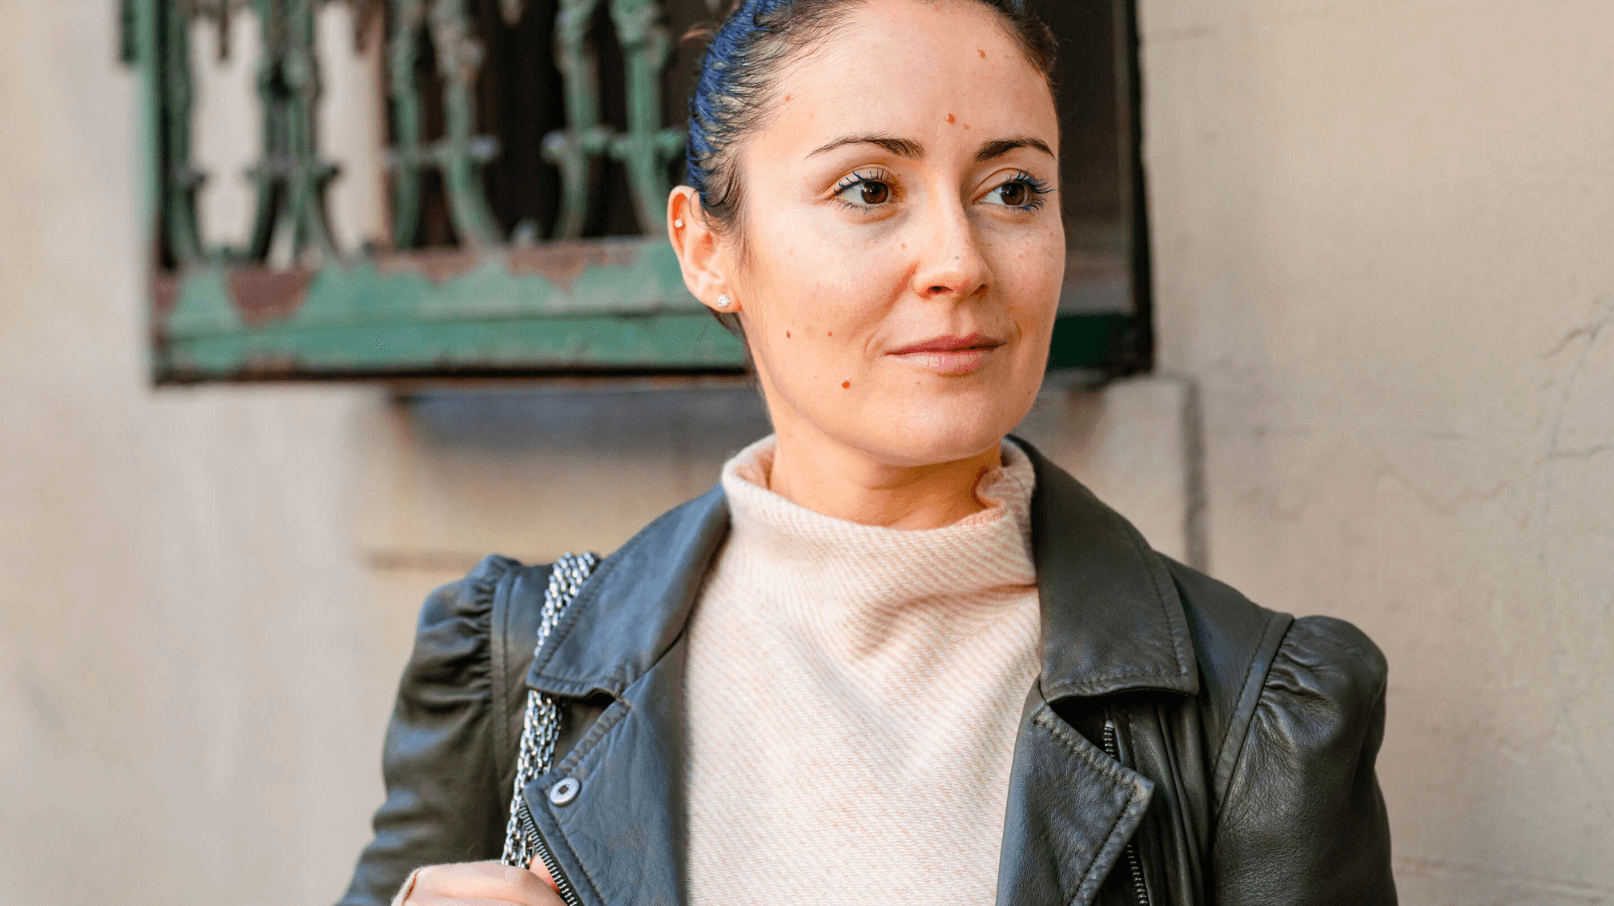 Easy and Chic NYC Fall Look